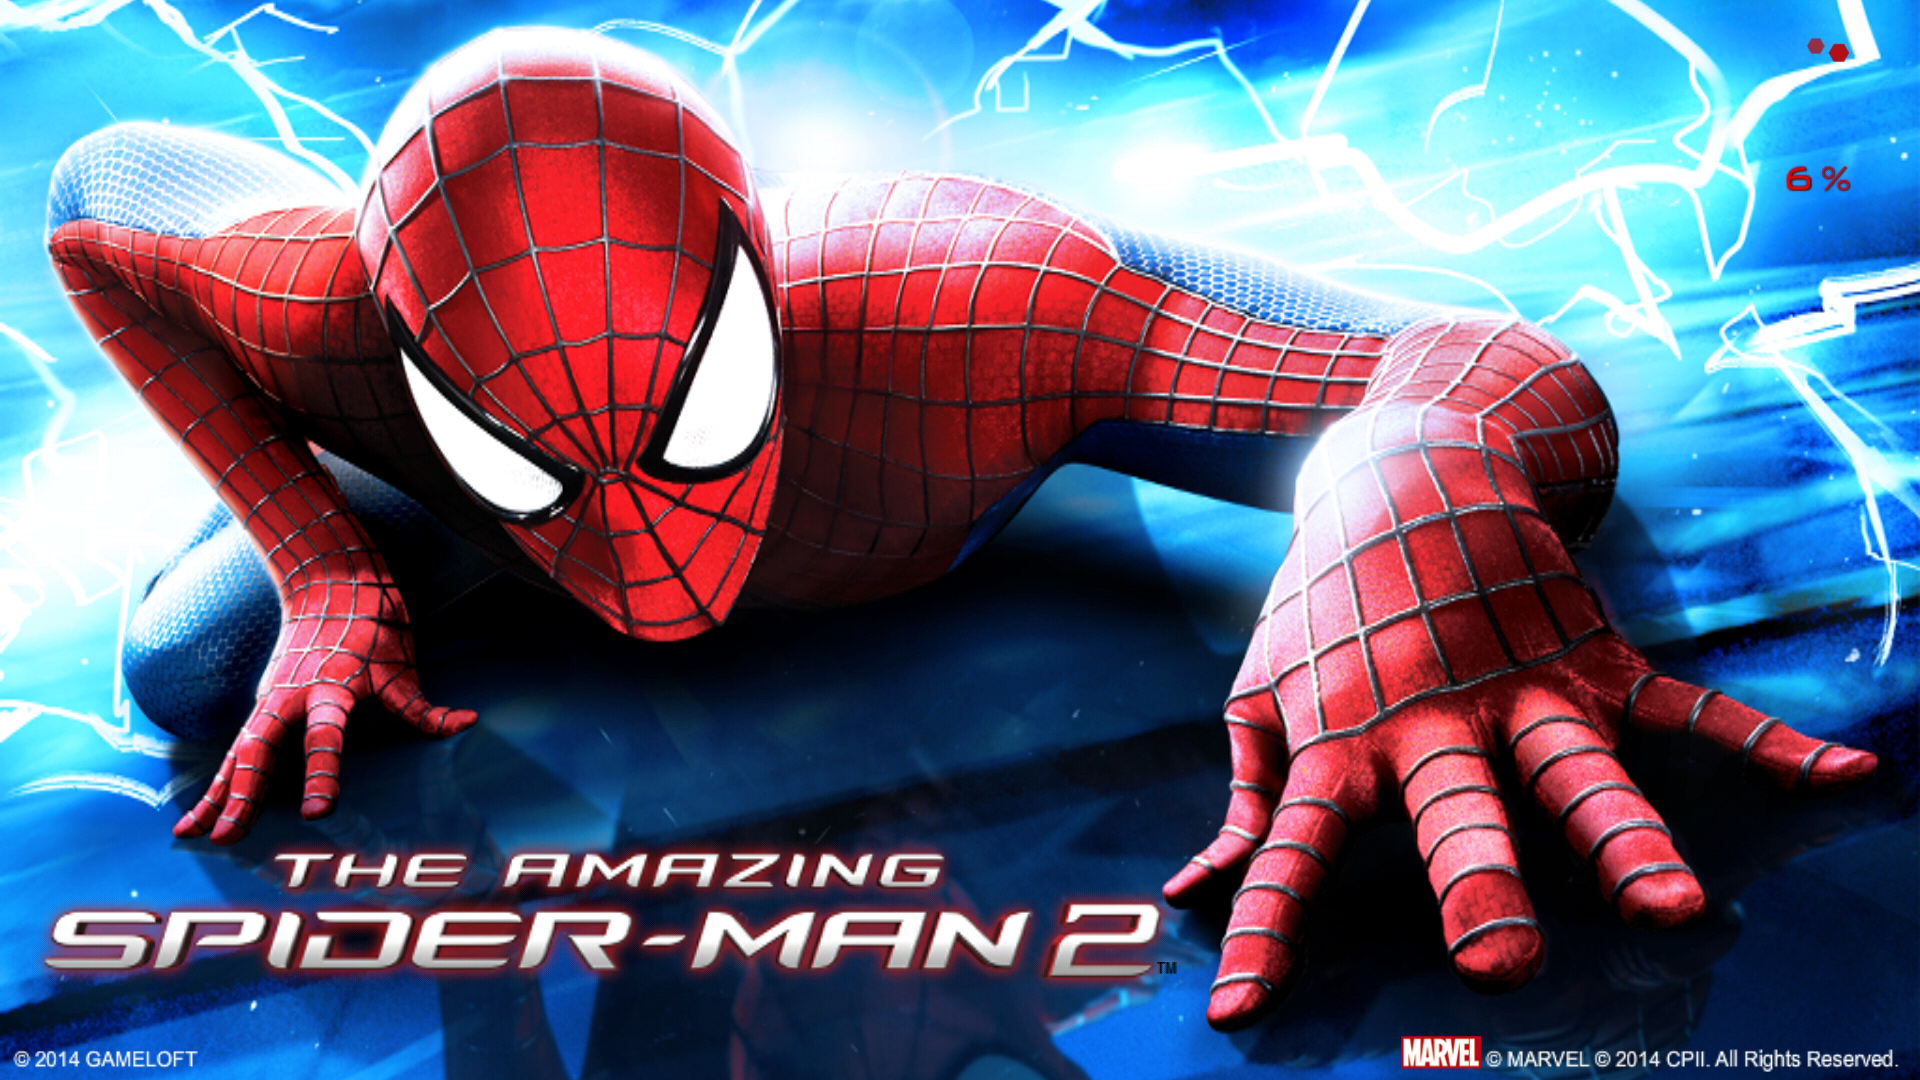 The Amazing Spider-Man 2 (2014) HD